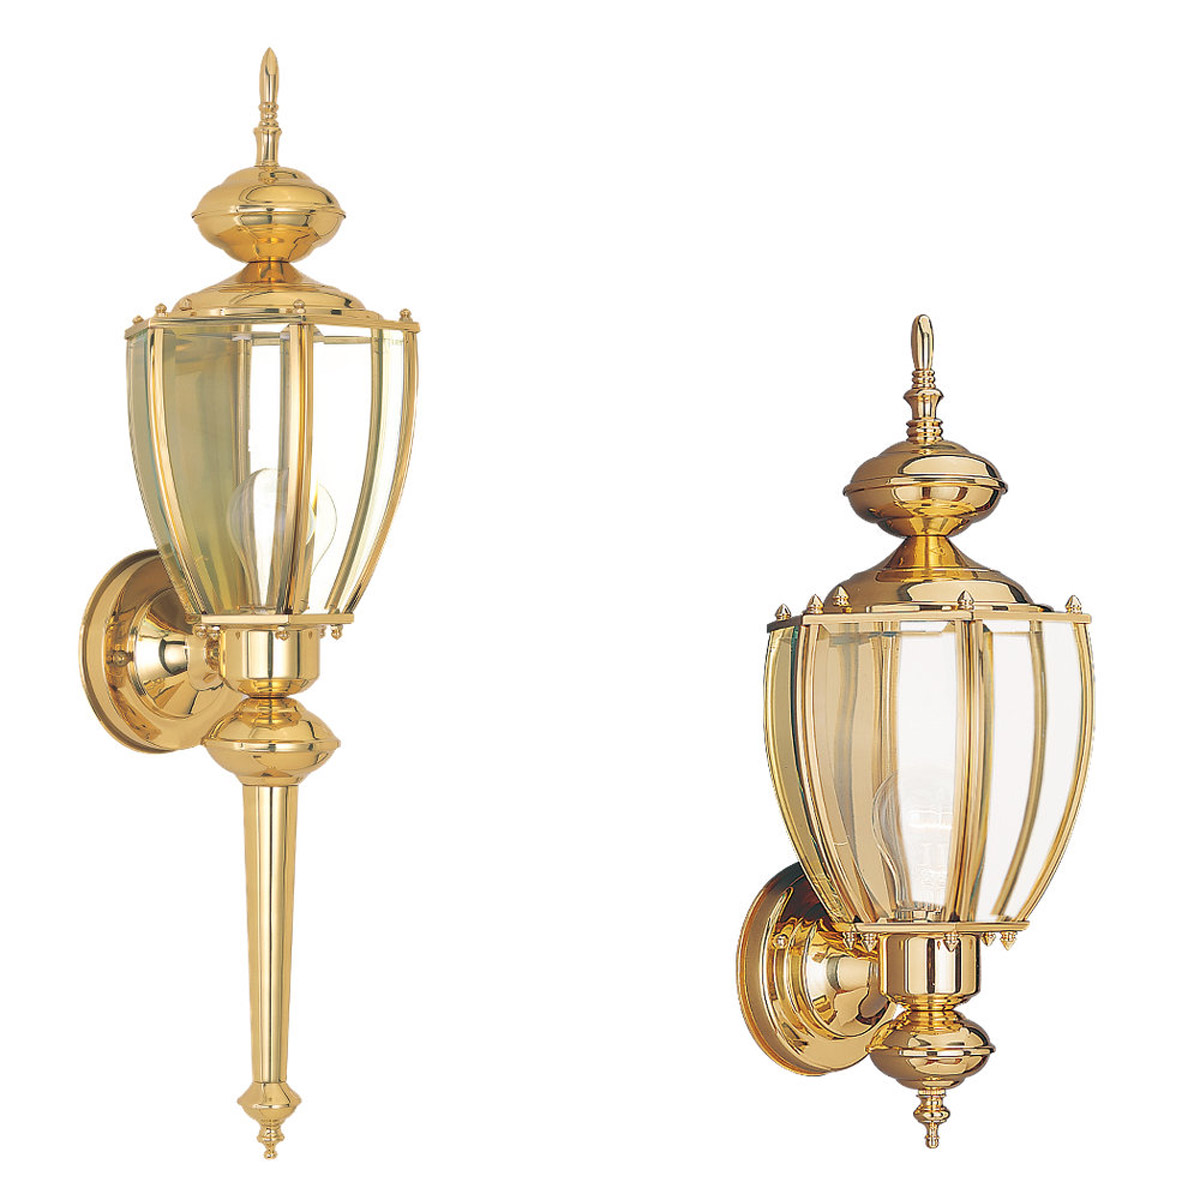 Sea Gull Lighting Society Hill 1 Light Outdoor Wall Lantern in Polished Brass 8578-02